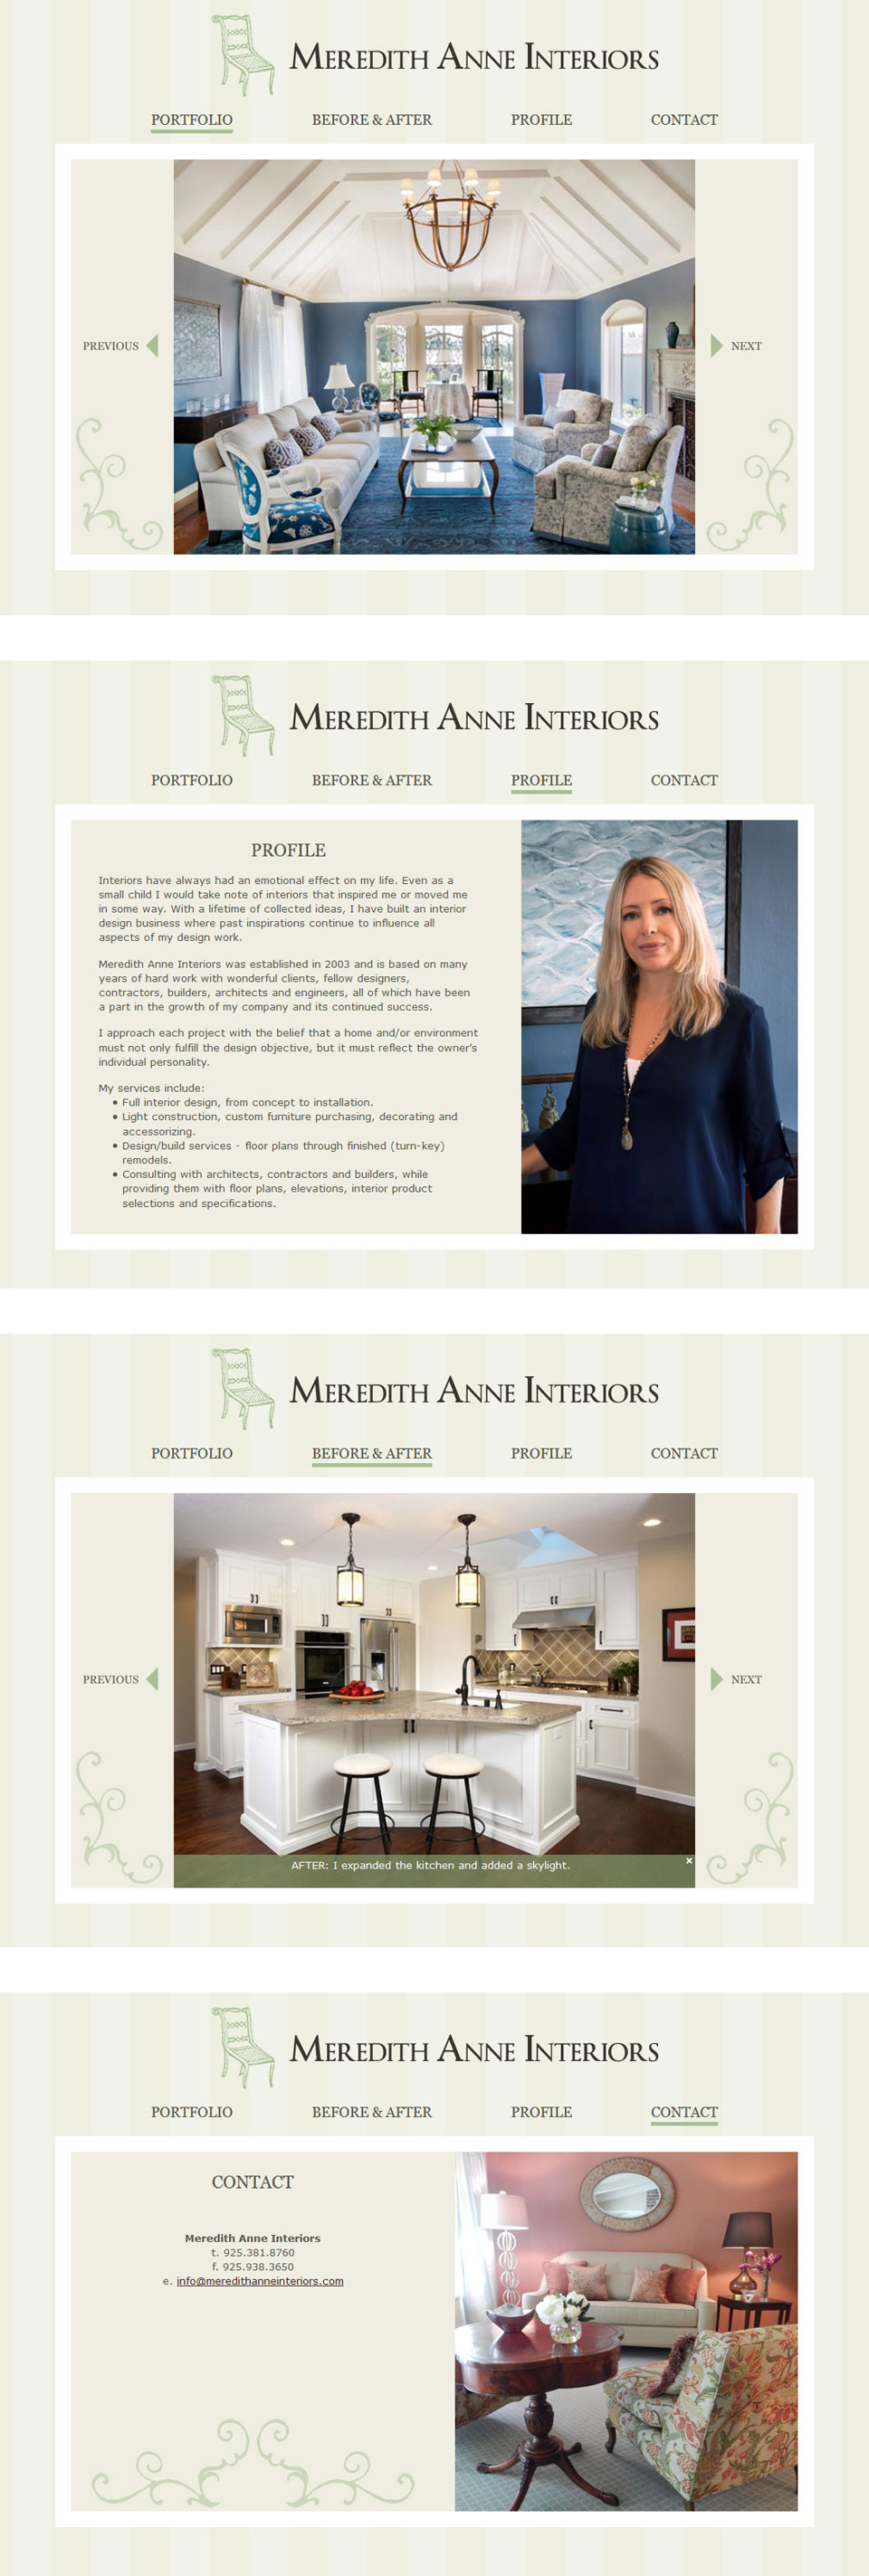 Interior Design Website Design for Meredith Anne Interiors